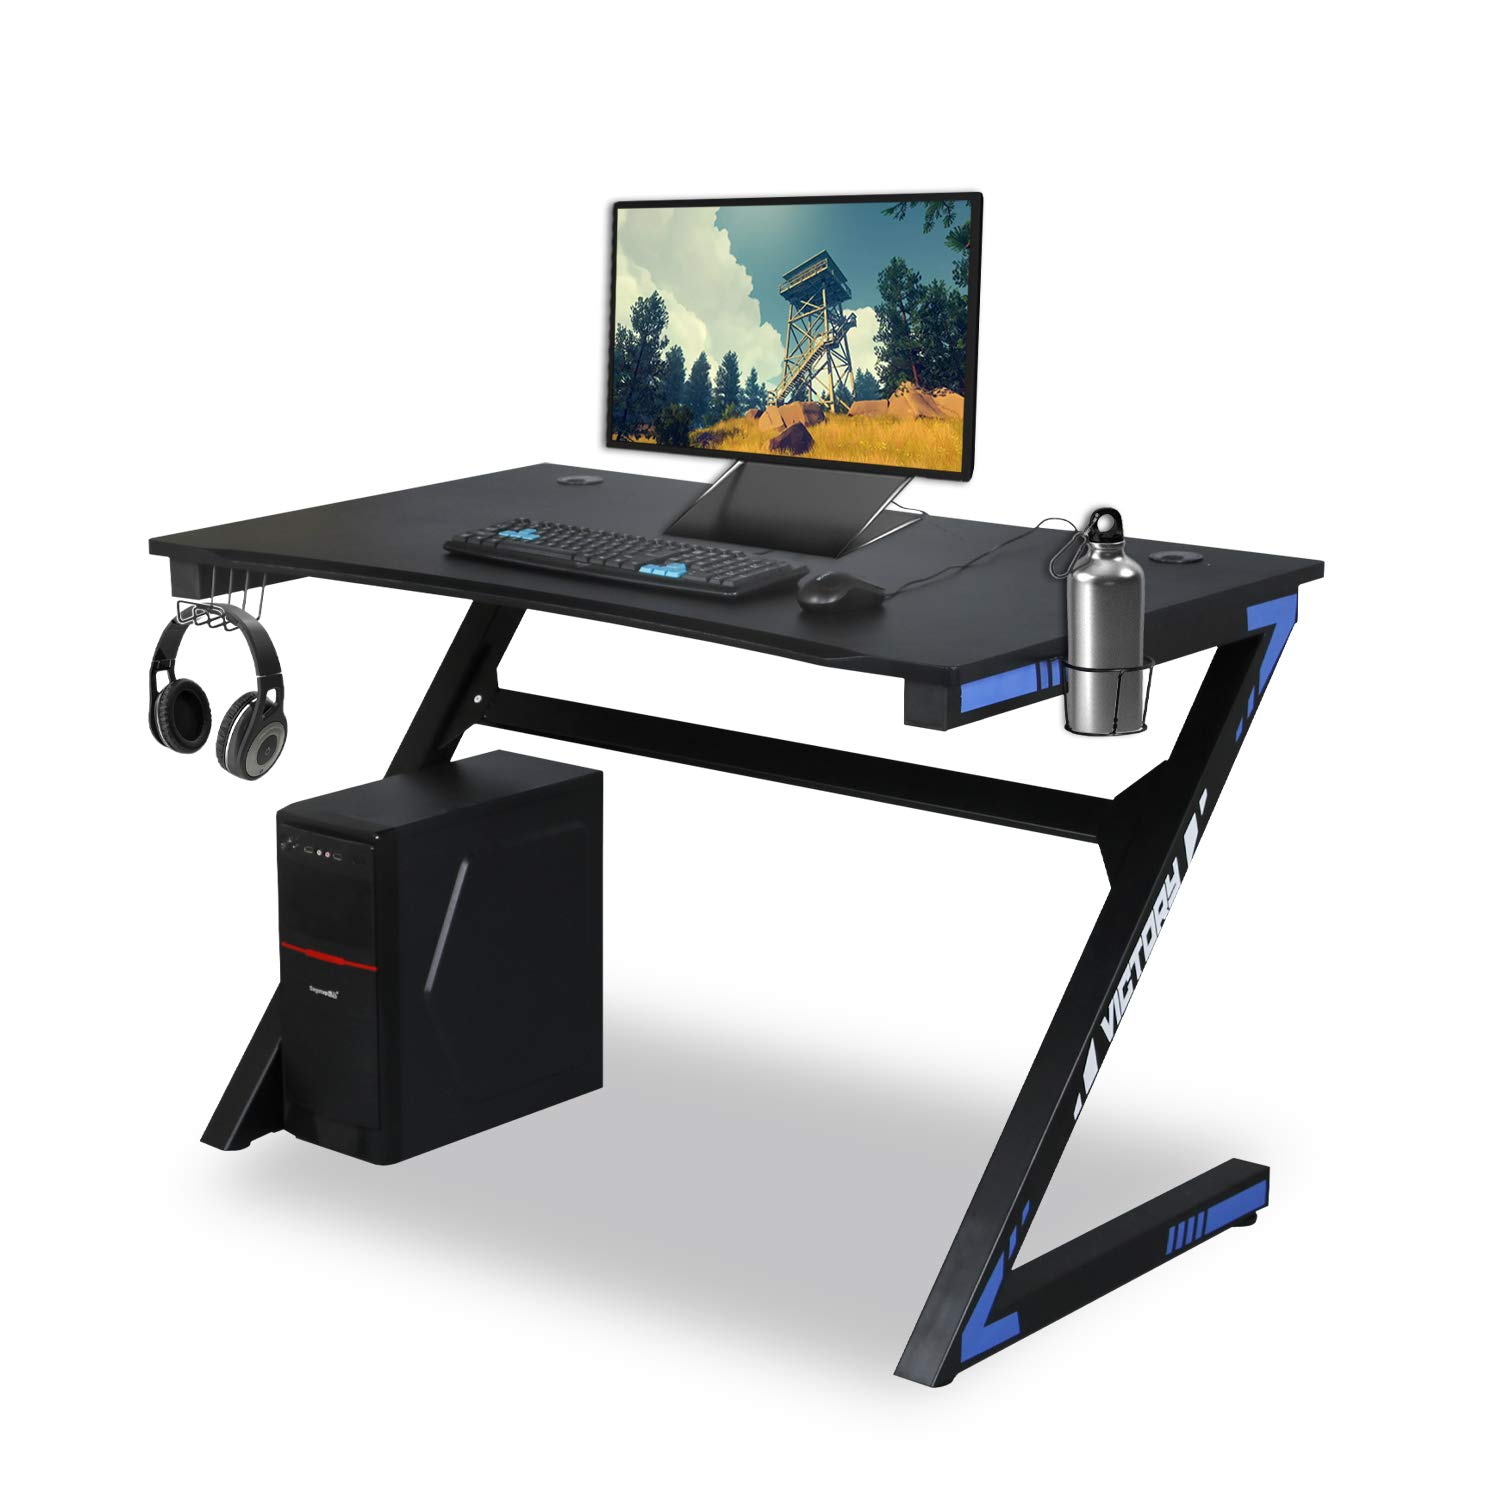 Kazila Gaming Desk Computer Table for Home Office Sturdy Desk with Cup Holder, Headphone Hook Gamer Workstation Laptop PC Desk,Blue